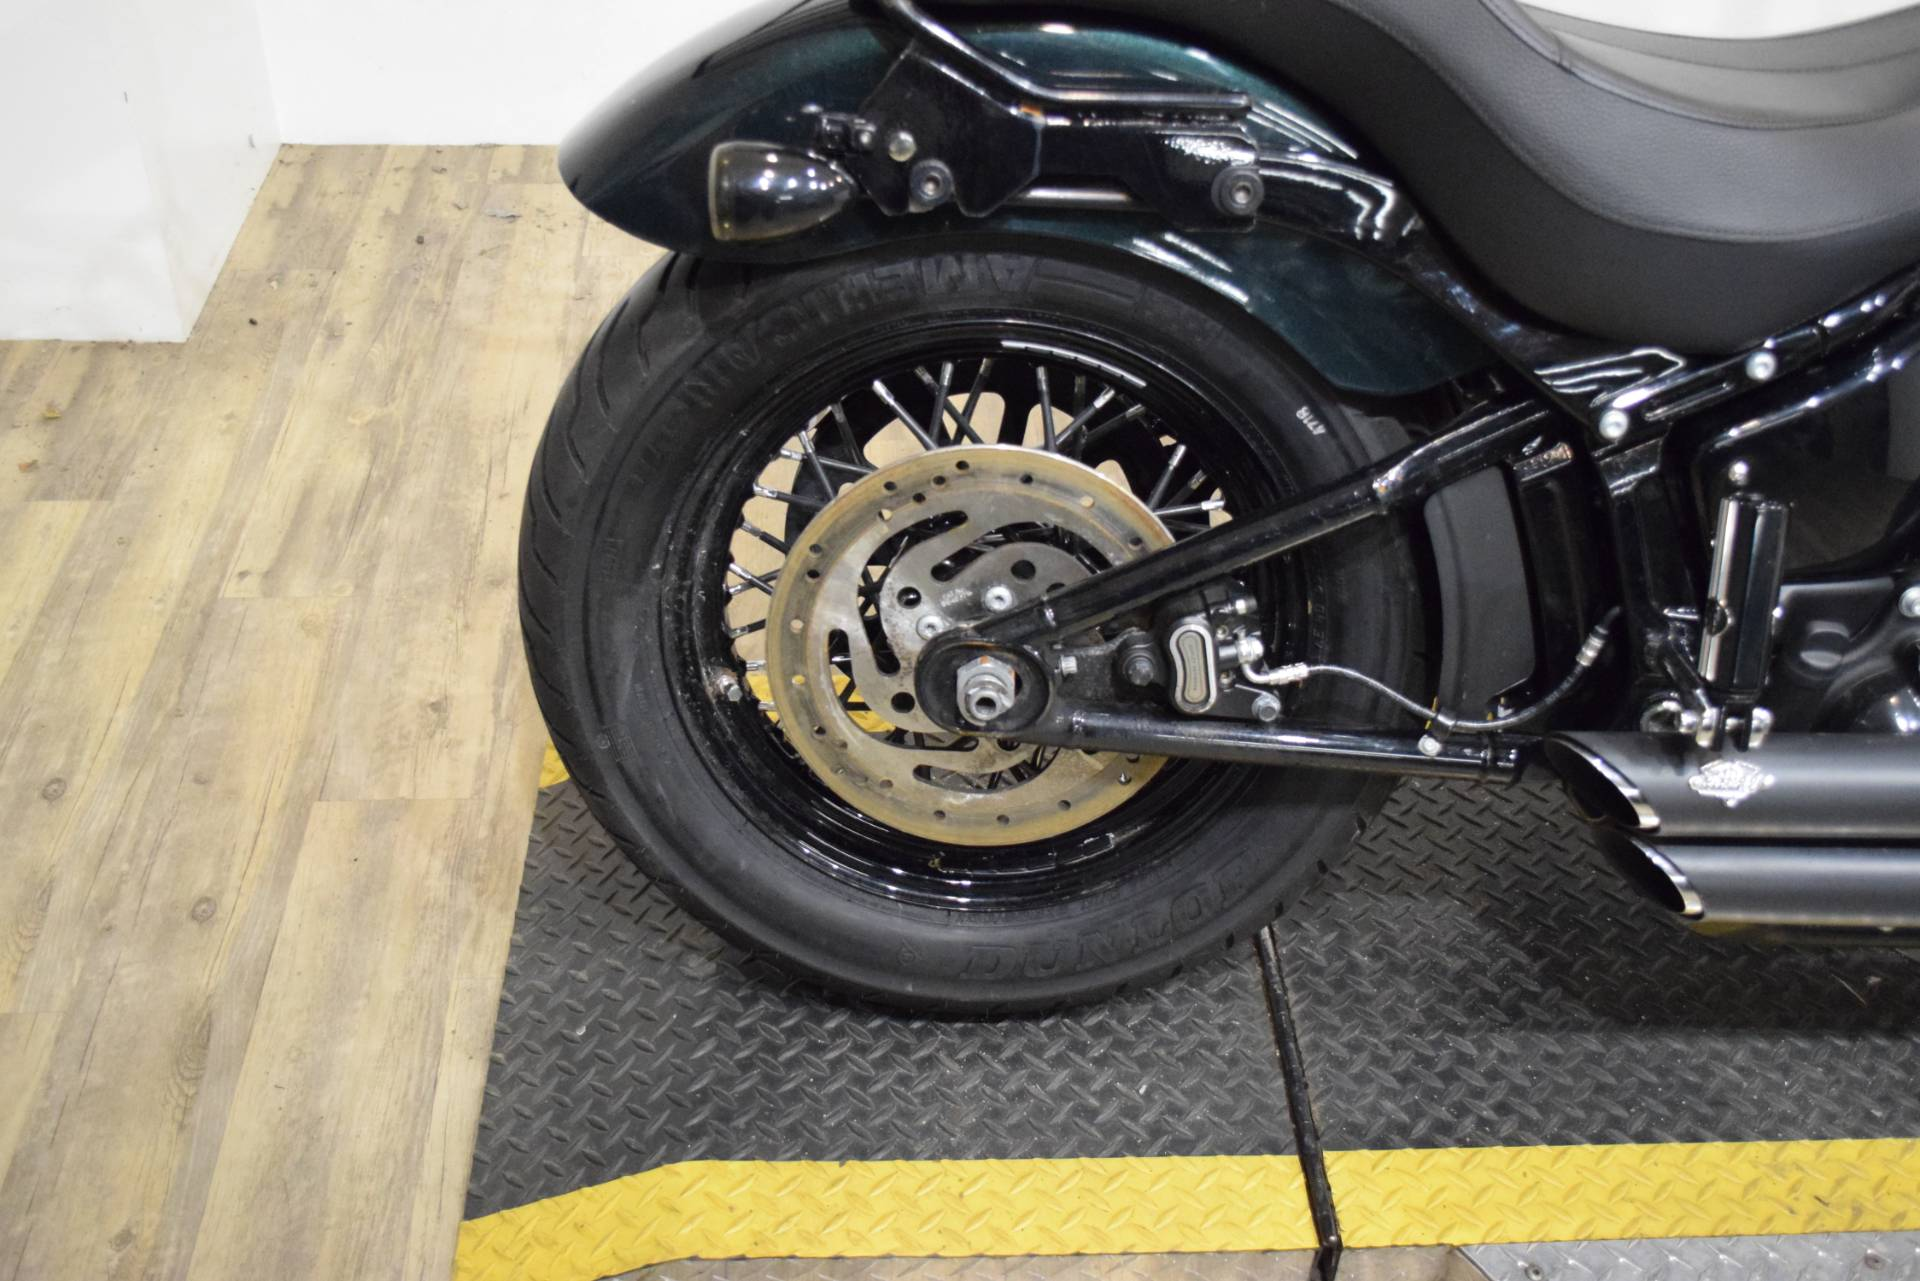 2018 Harley-Davidson Softail Slim in Wauconda, Illinois - Photo 8